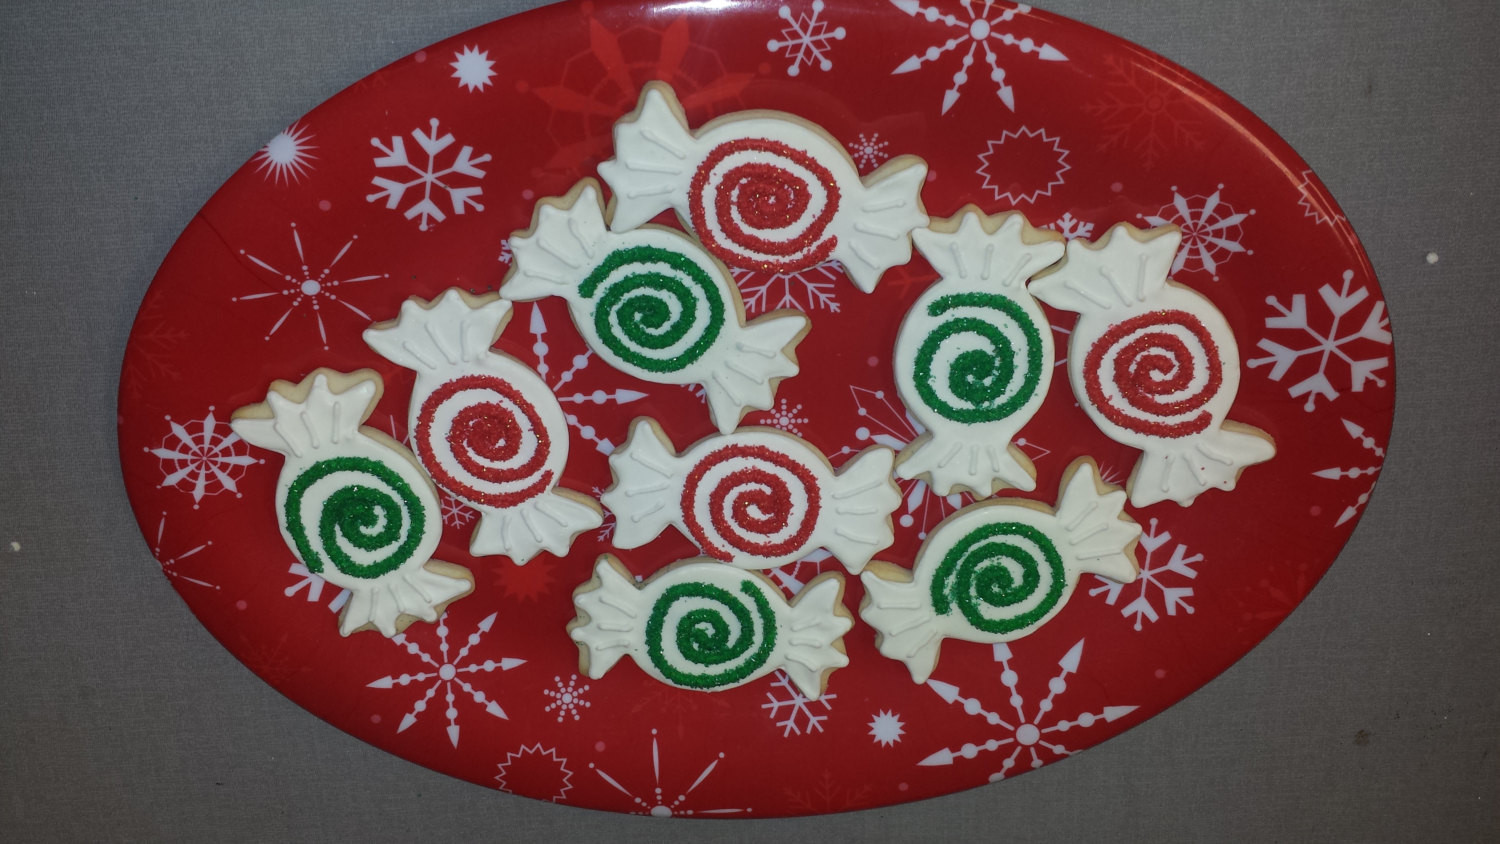 Wrapped Christmas Candy  12 Christmas Candy Sugar Cookies Christmas Wrapped Candy